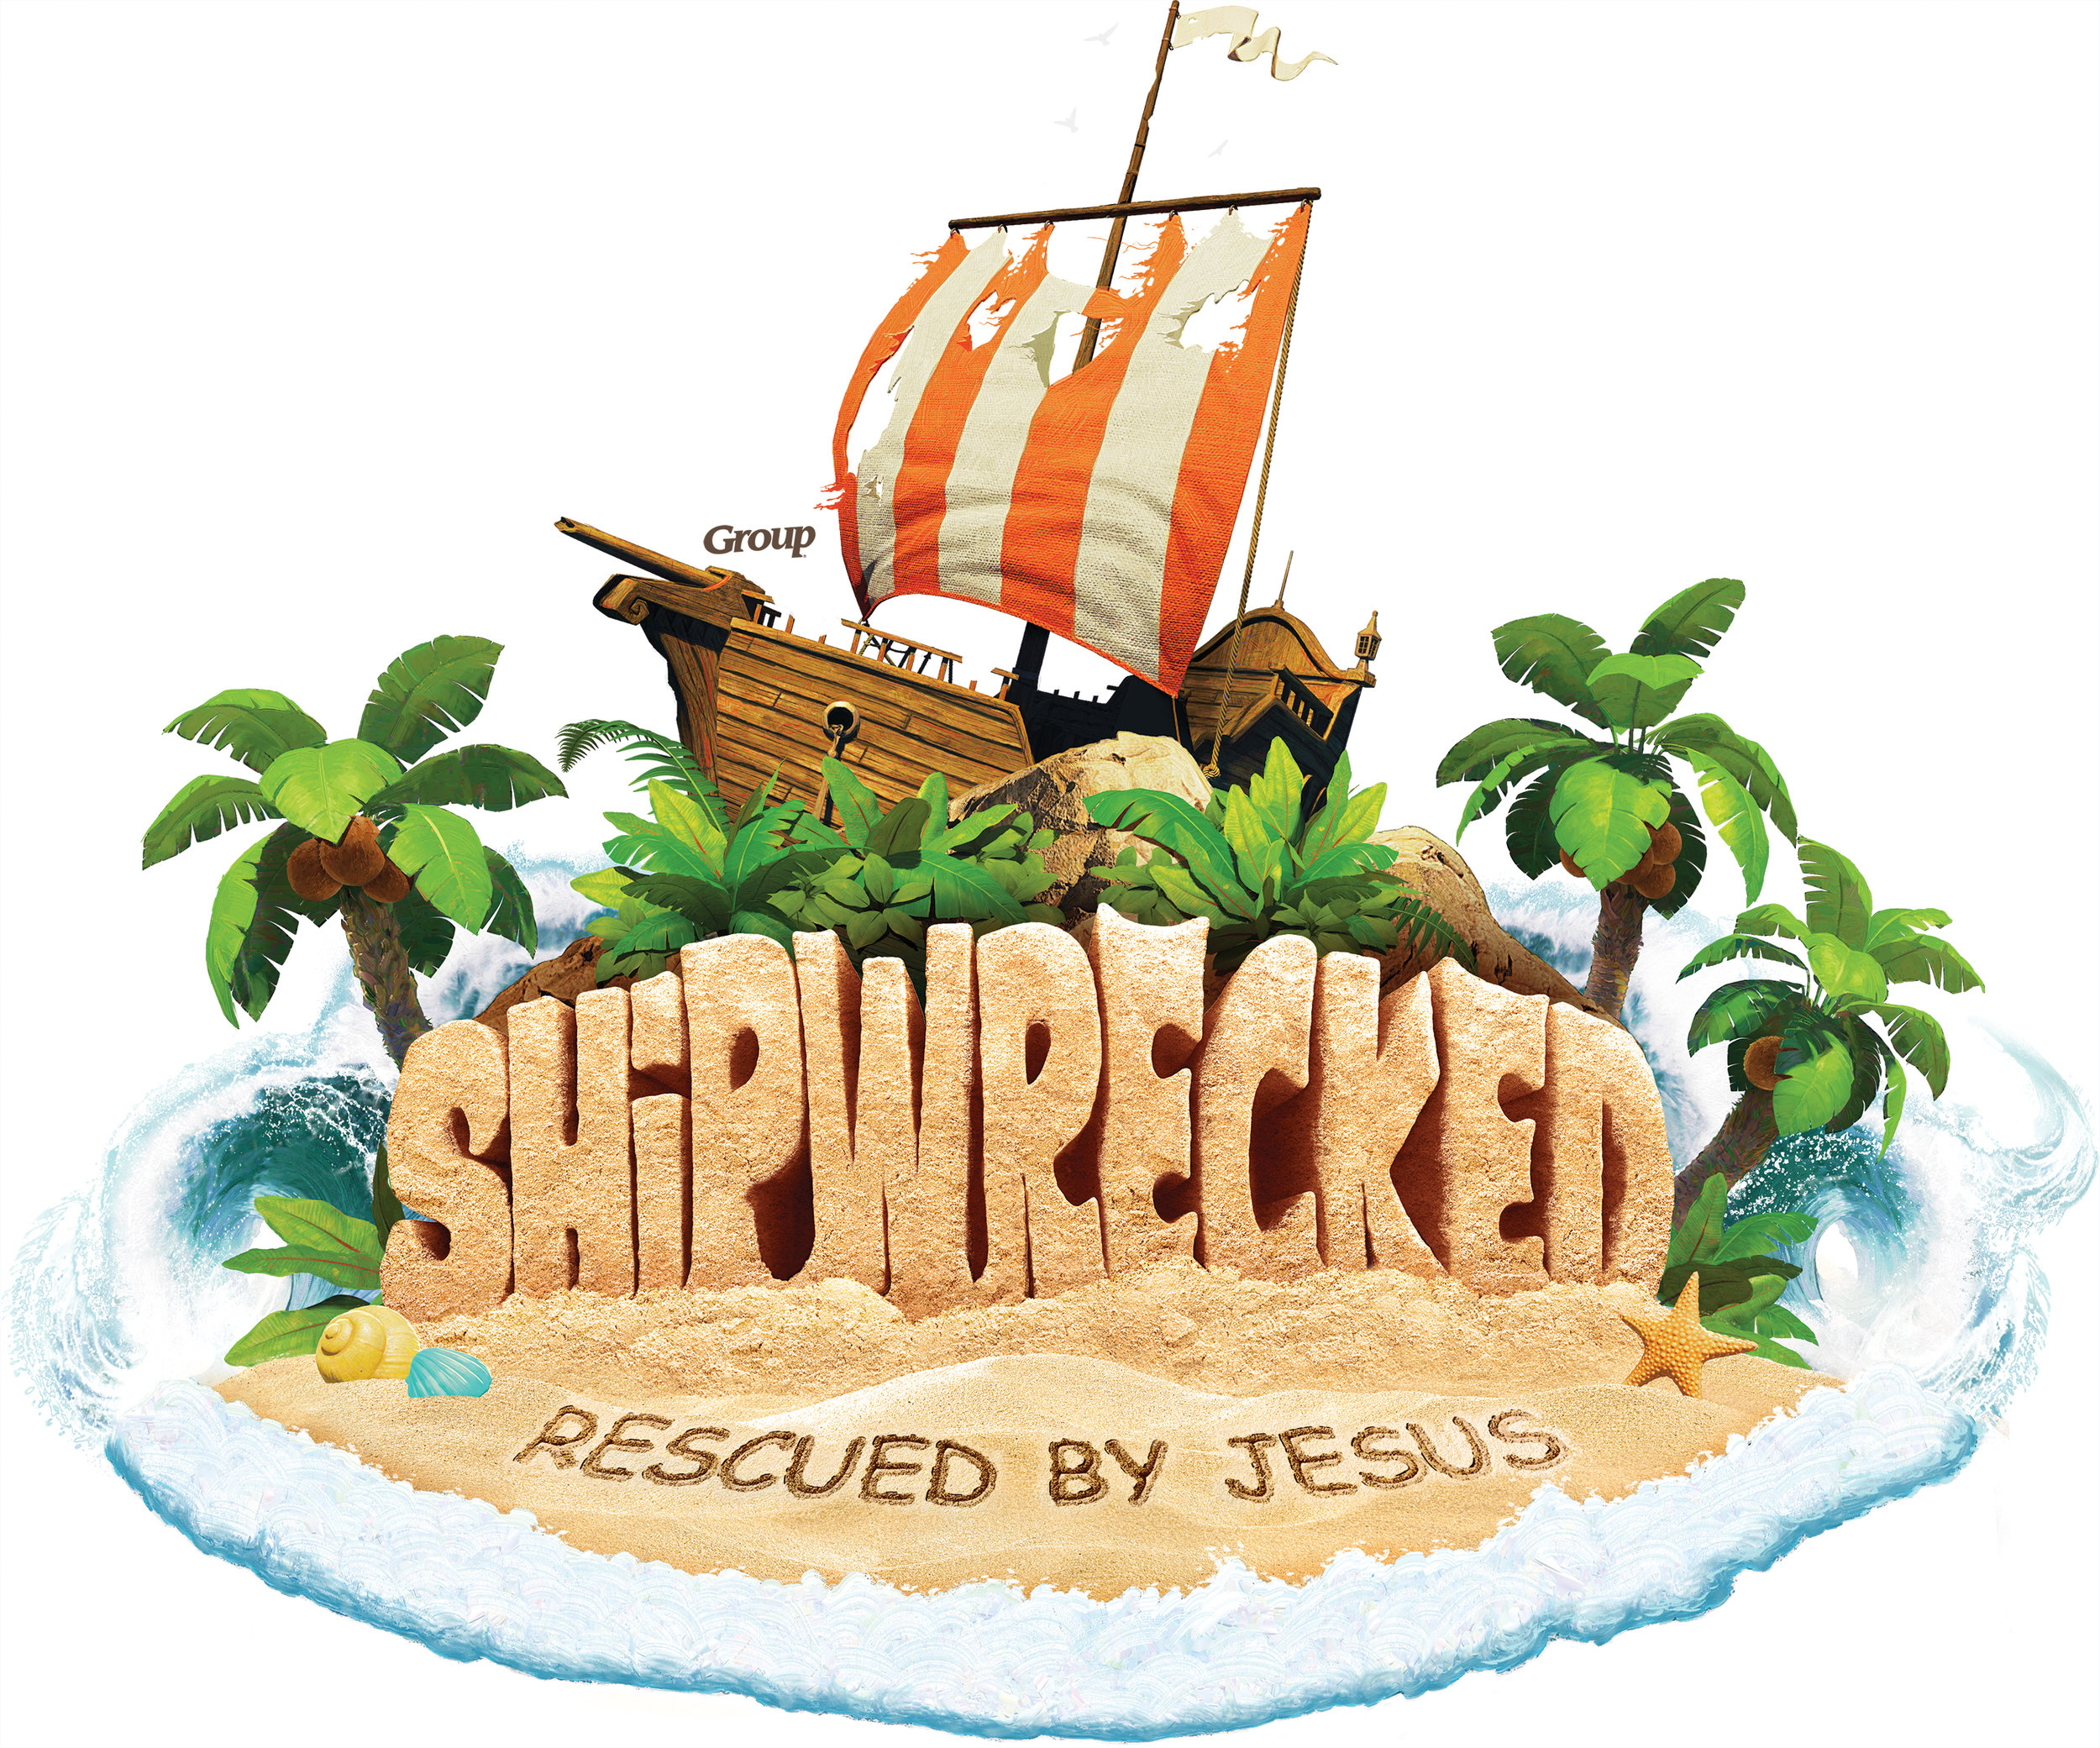 HERITAGE VBS // JULY 22-26, 2019 3520 STRAYER RD